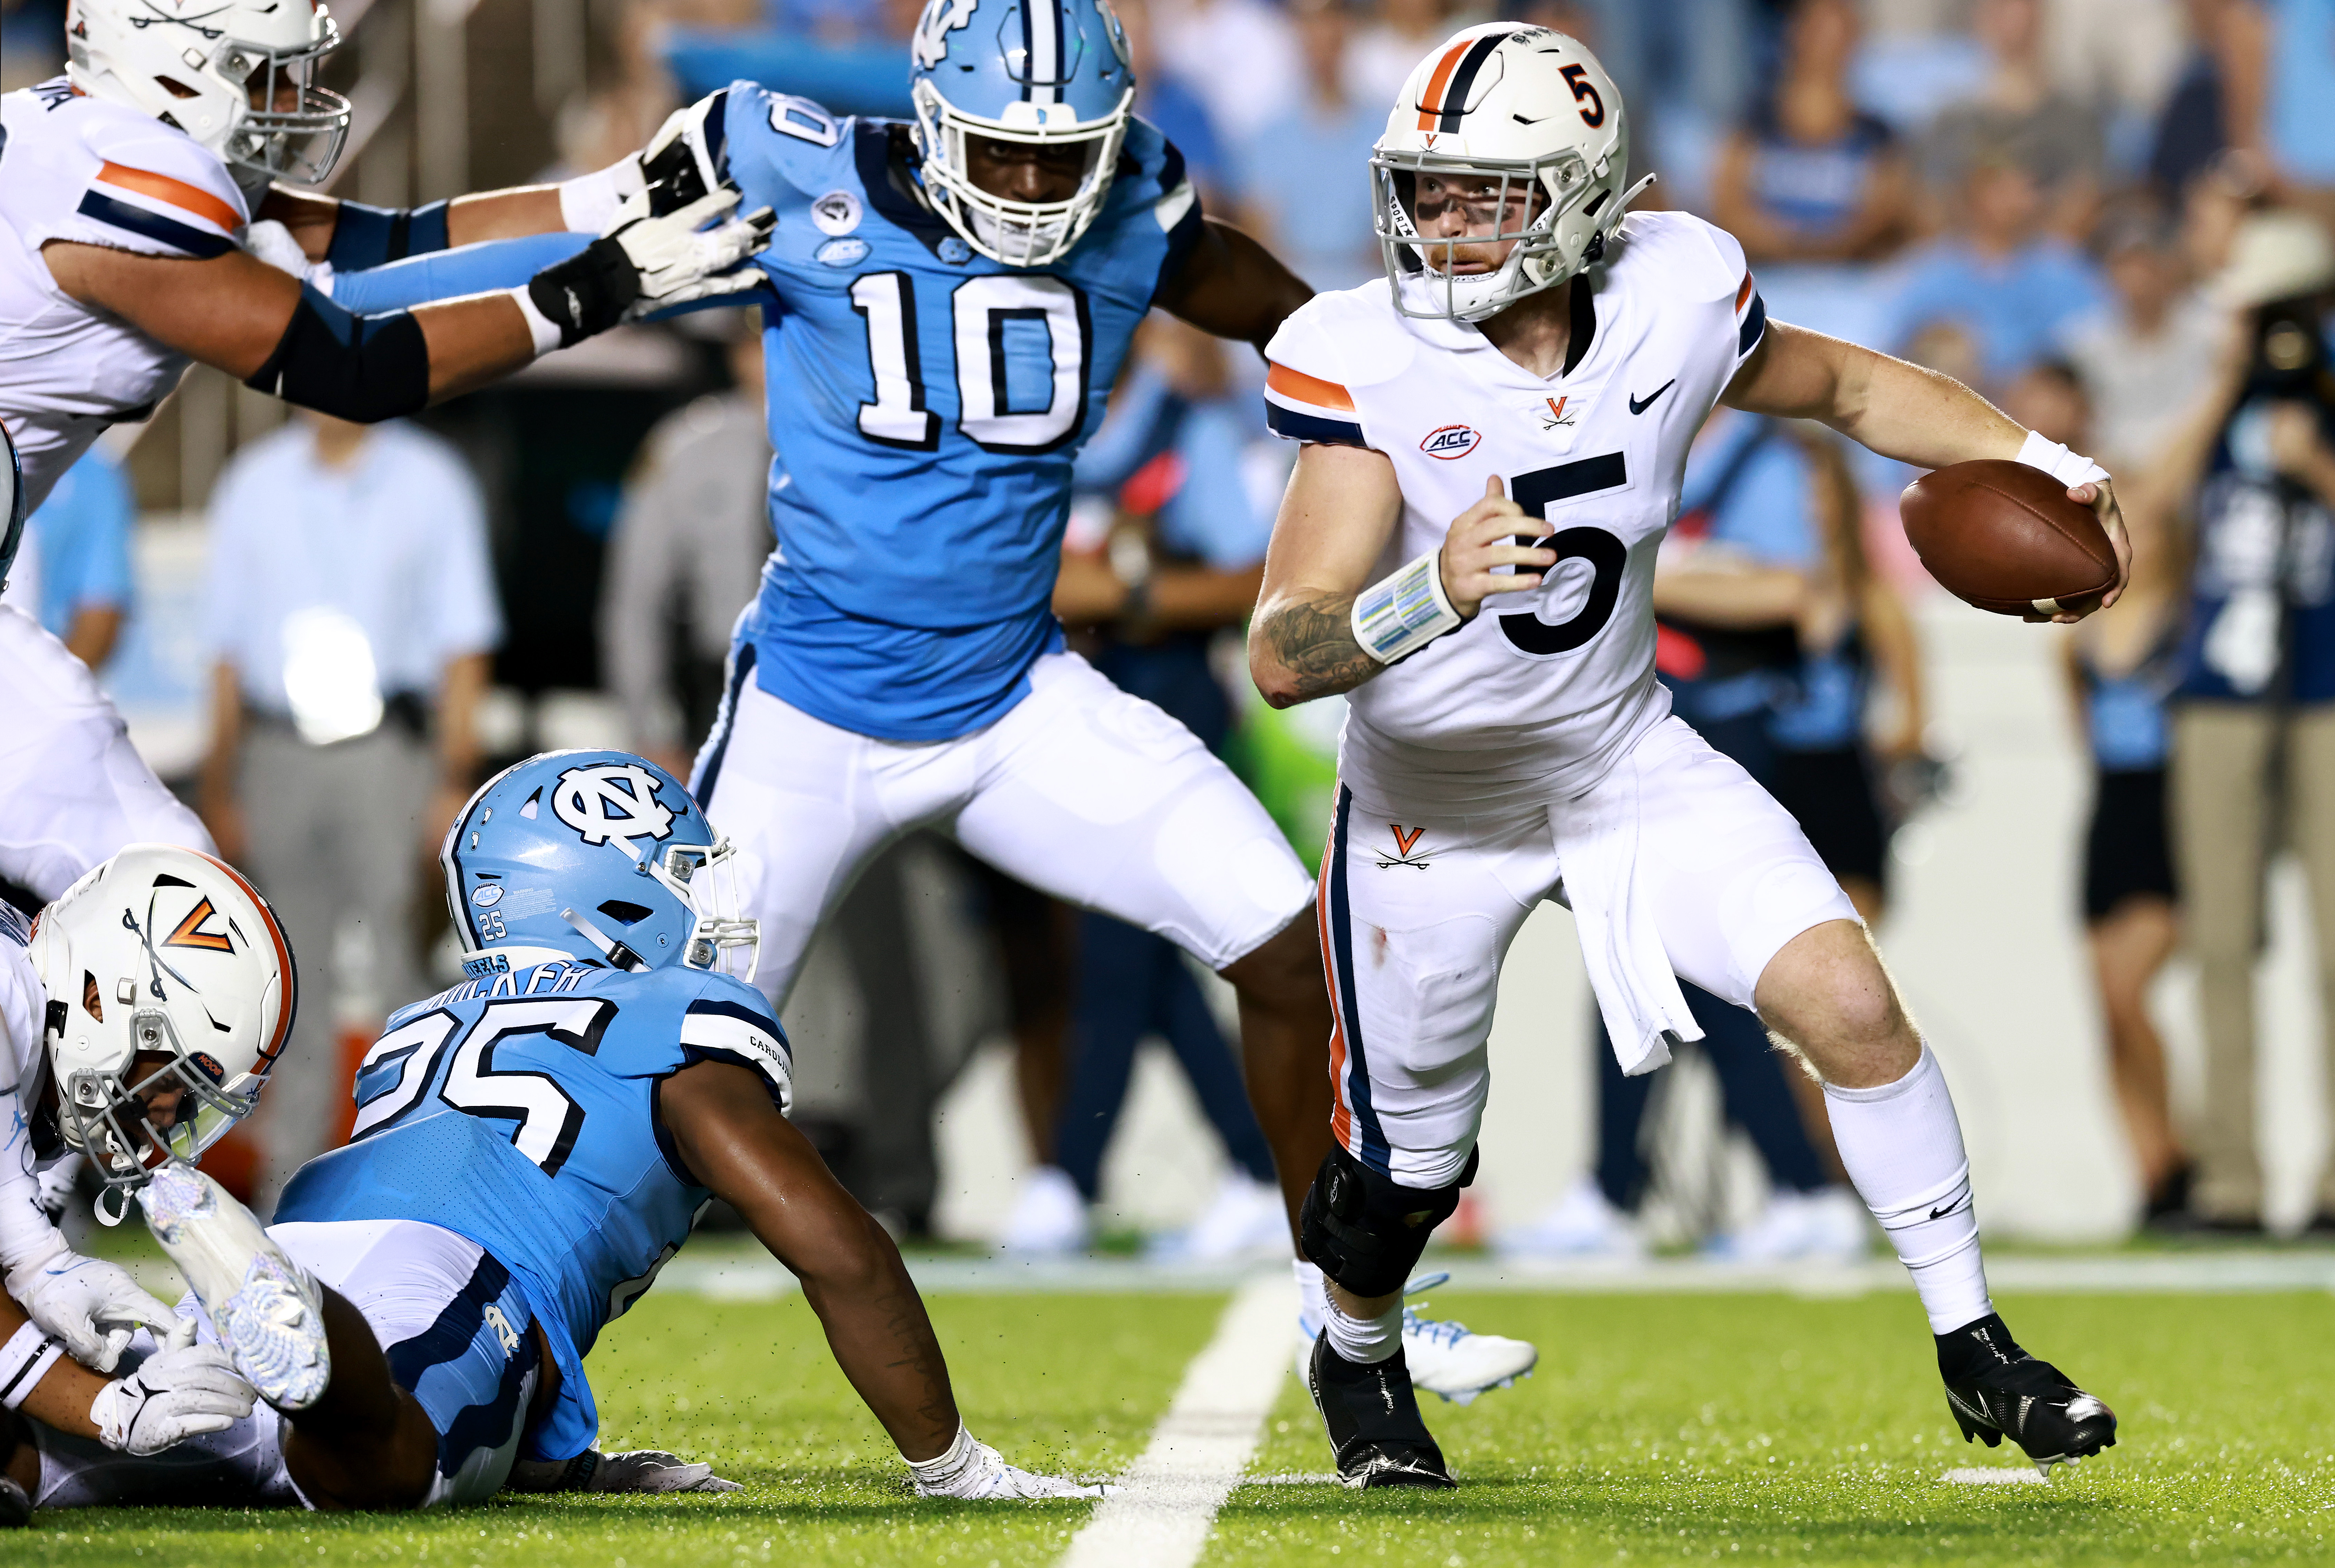 Brennan Armstrong #5 of the Virginia Cavaliers rolls out under pressure from Kaimon Rucker #25 and Desmond Evans #10 of the North Carolina Tar Heels during the first half of their game at Kenan Memorial Stadium on September 18, 2021 in Chapel Hill, North Carolina.